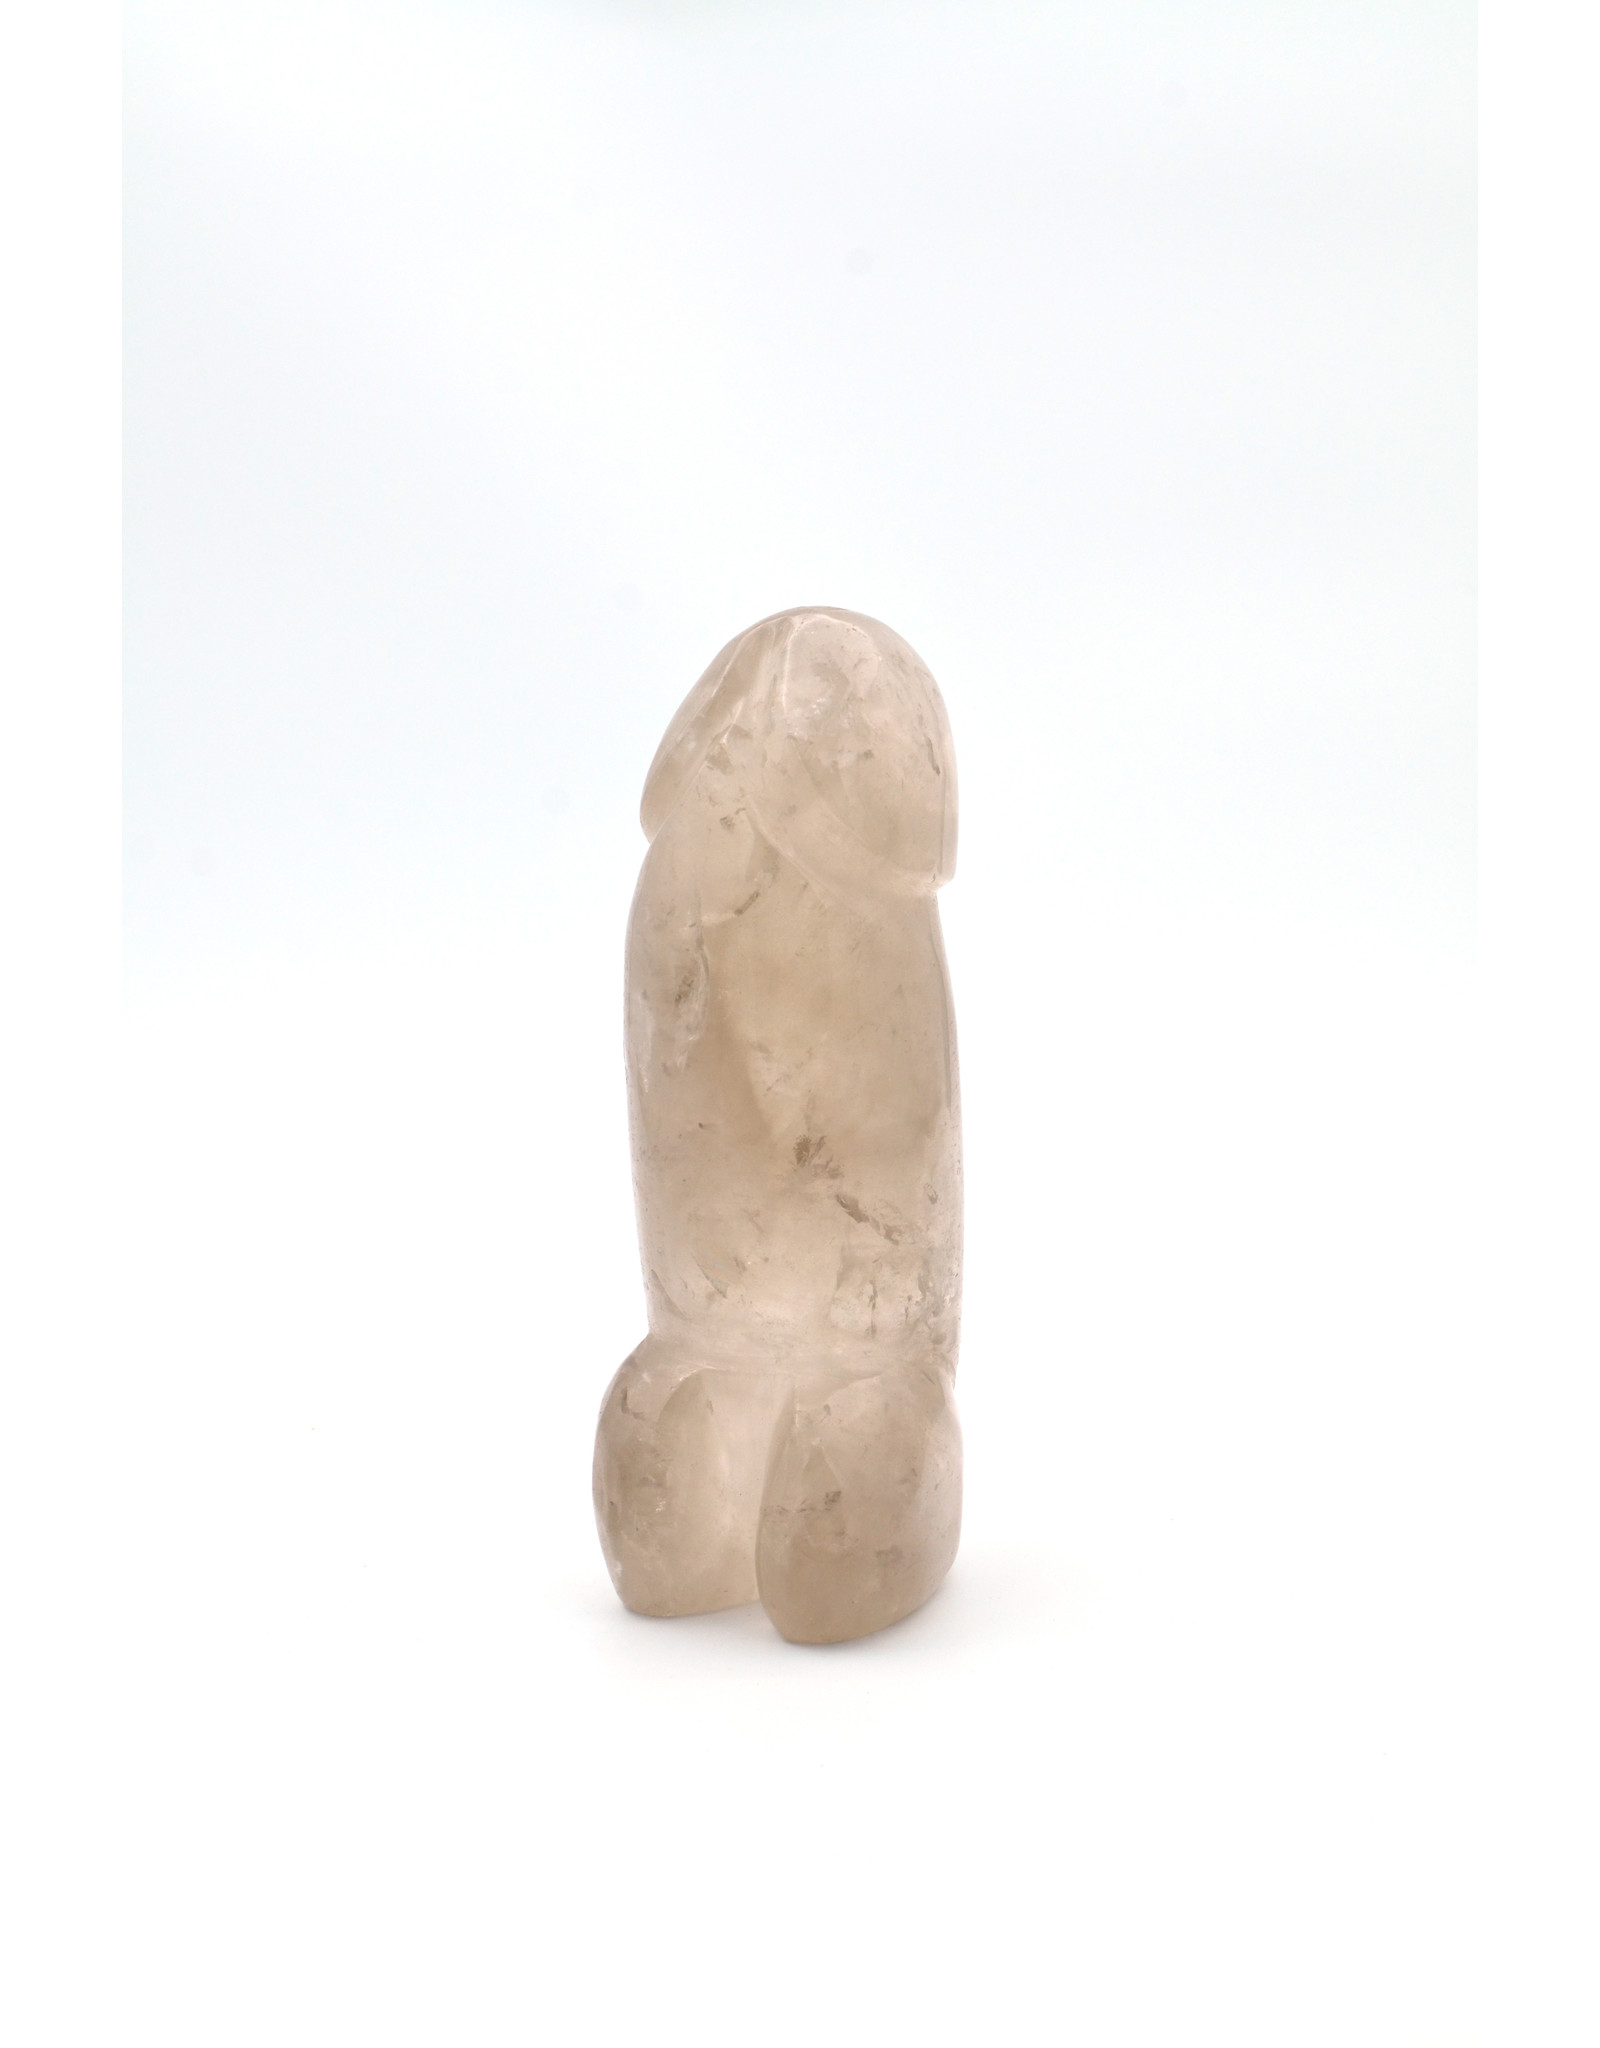 Thick Smoky Quartz Phallus 7.25 inches